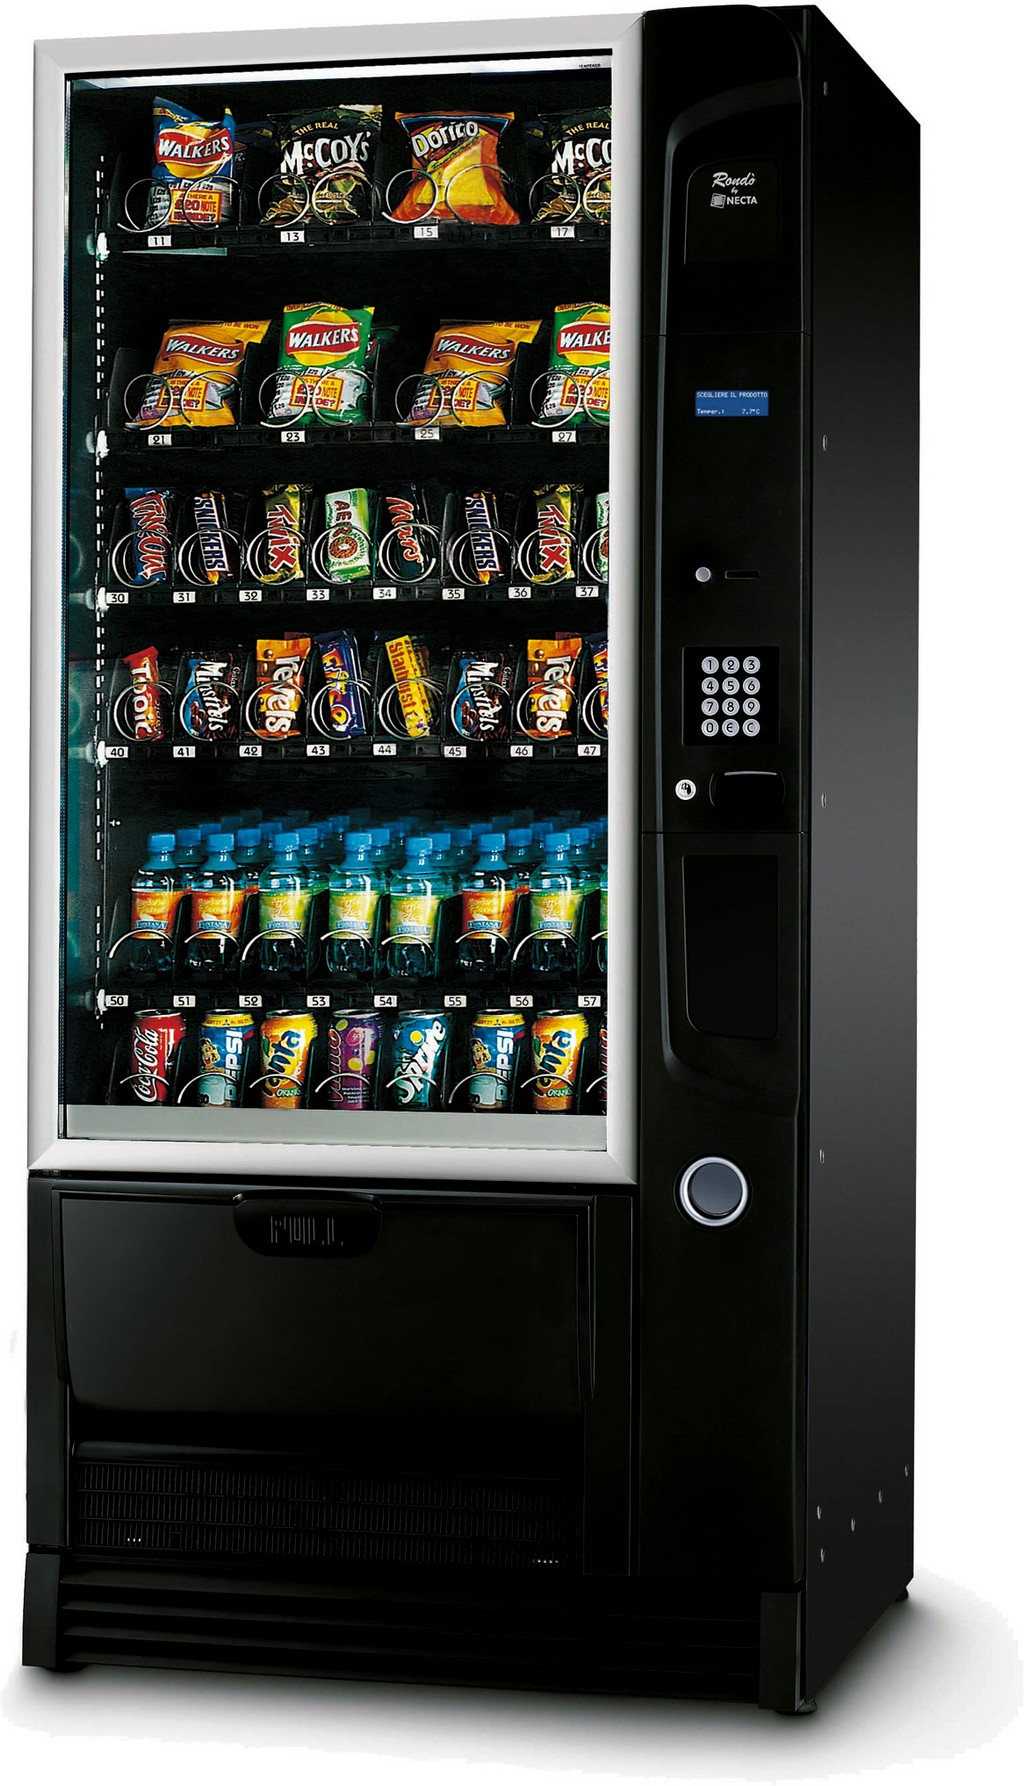 vending machine service, beer vending machine, vendo vending machine